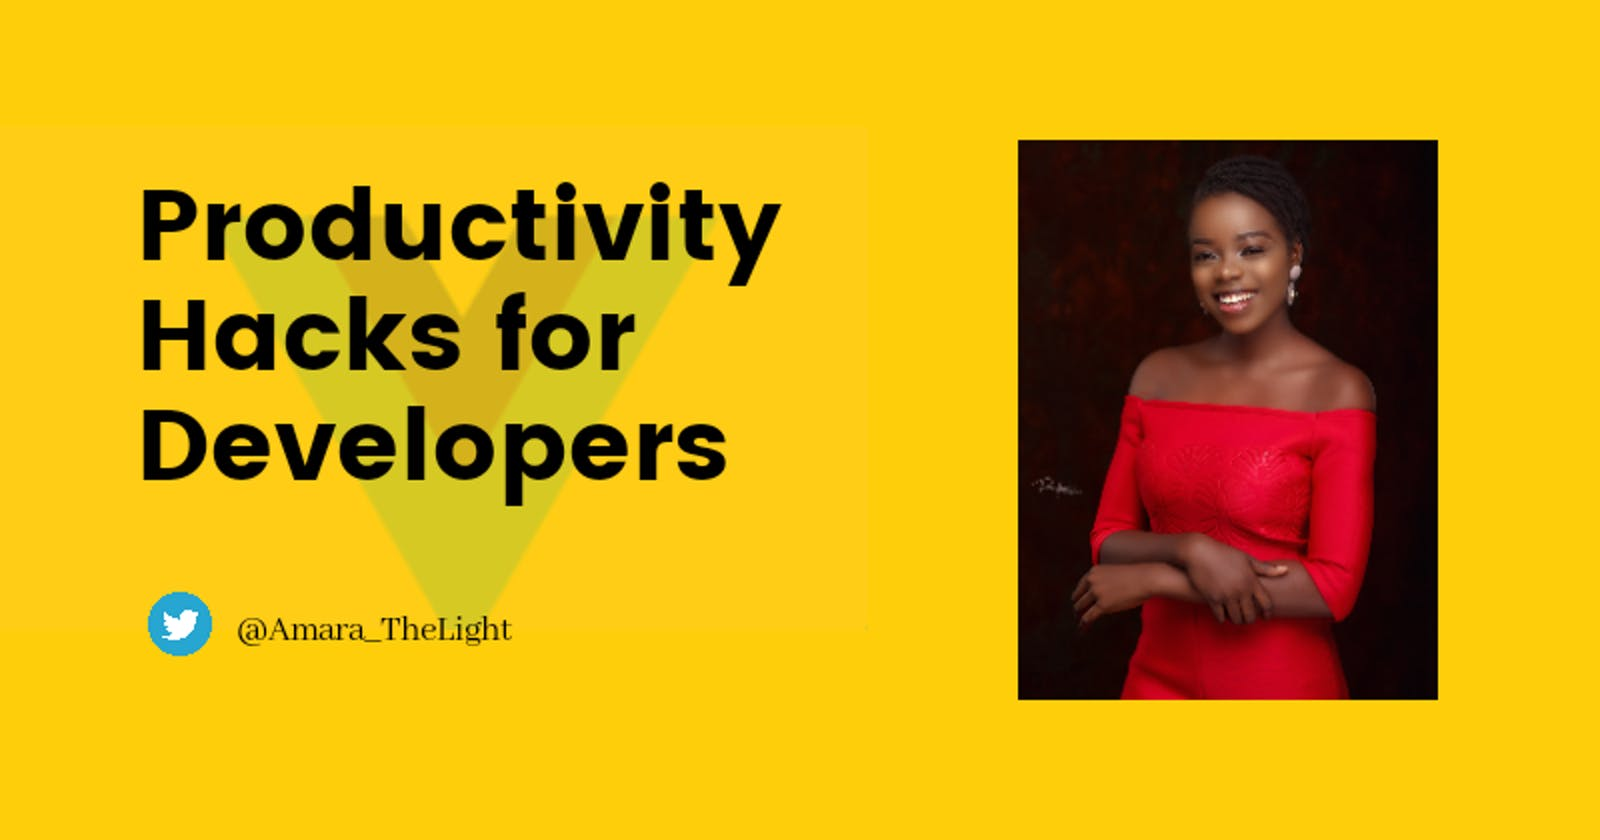 Productivity Hacks for Developers